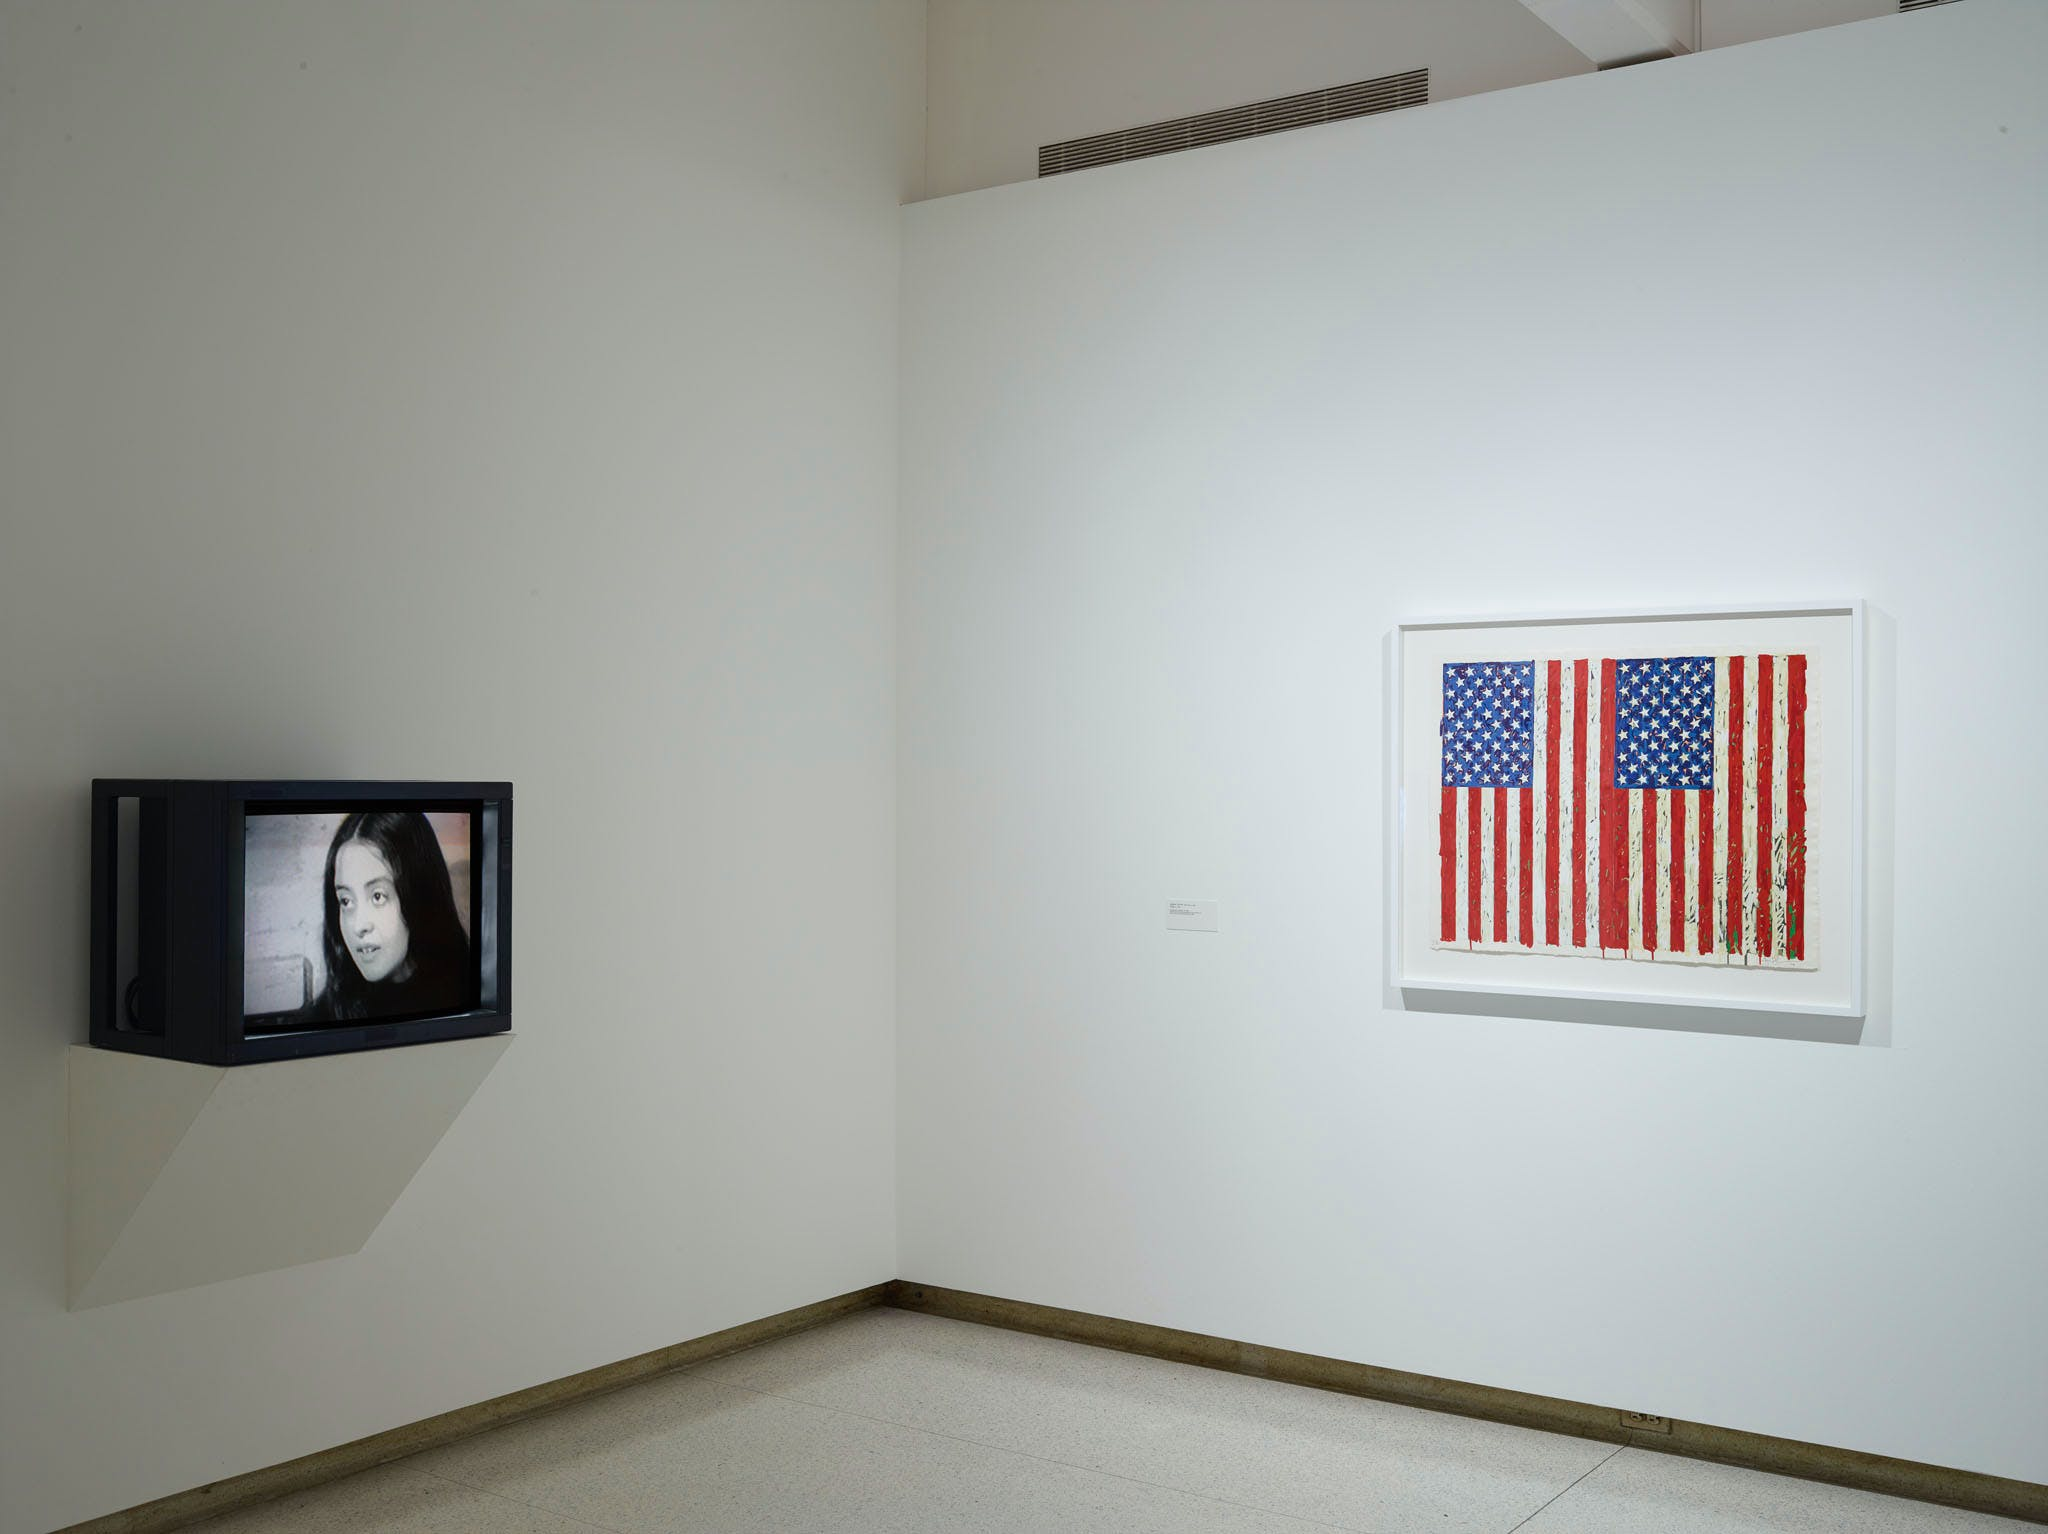 View of the exhibition Less Than One, 2016; (left to right): Adrian Piper, The Mythic Being, 1973; Jasper Johns, Flags I, 1973 (Photo: Gene Pittman, ©Walker Art Center)